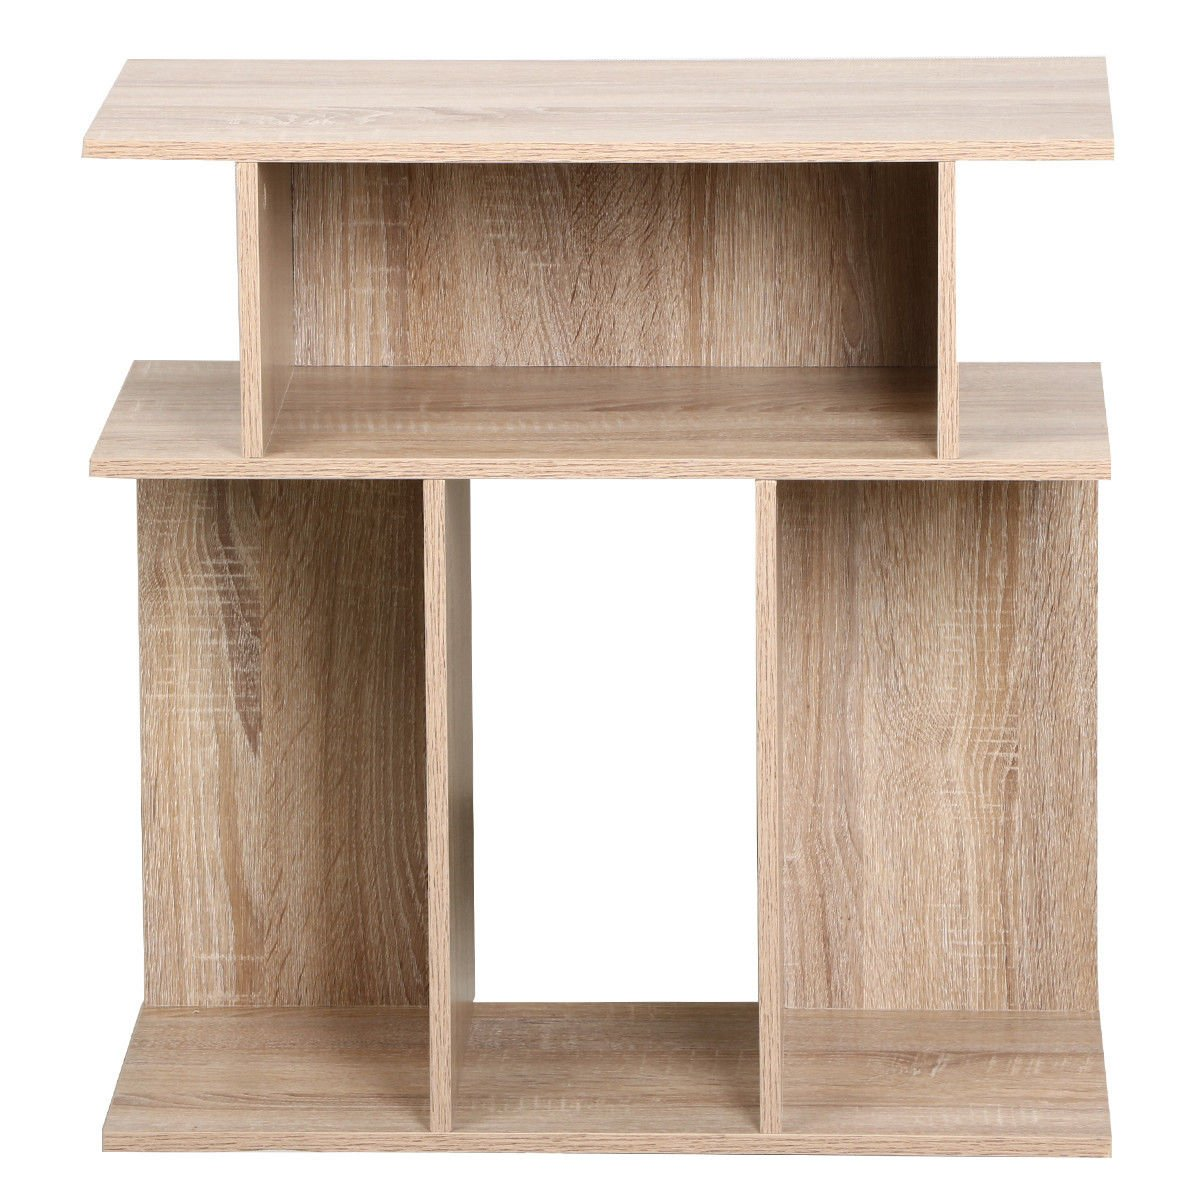 Eight24hours Rustice Accent Side Table Book Storage Display Shelves Sofa End Console Table - Oak